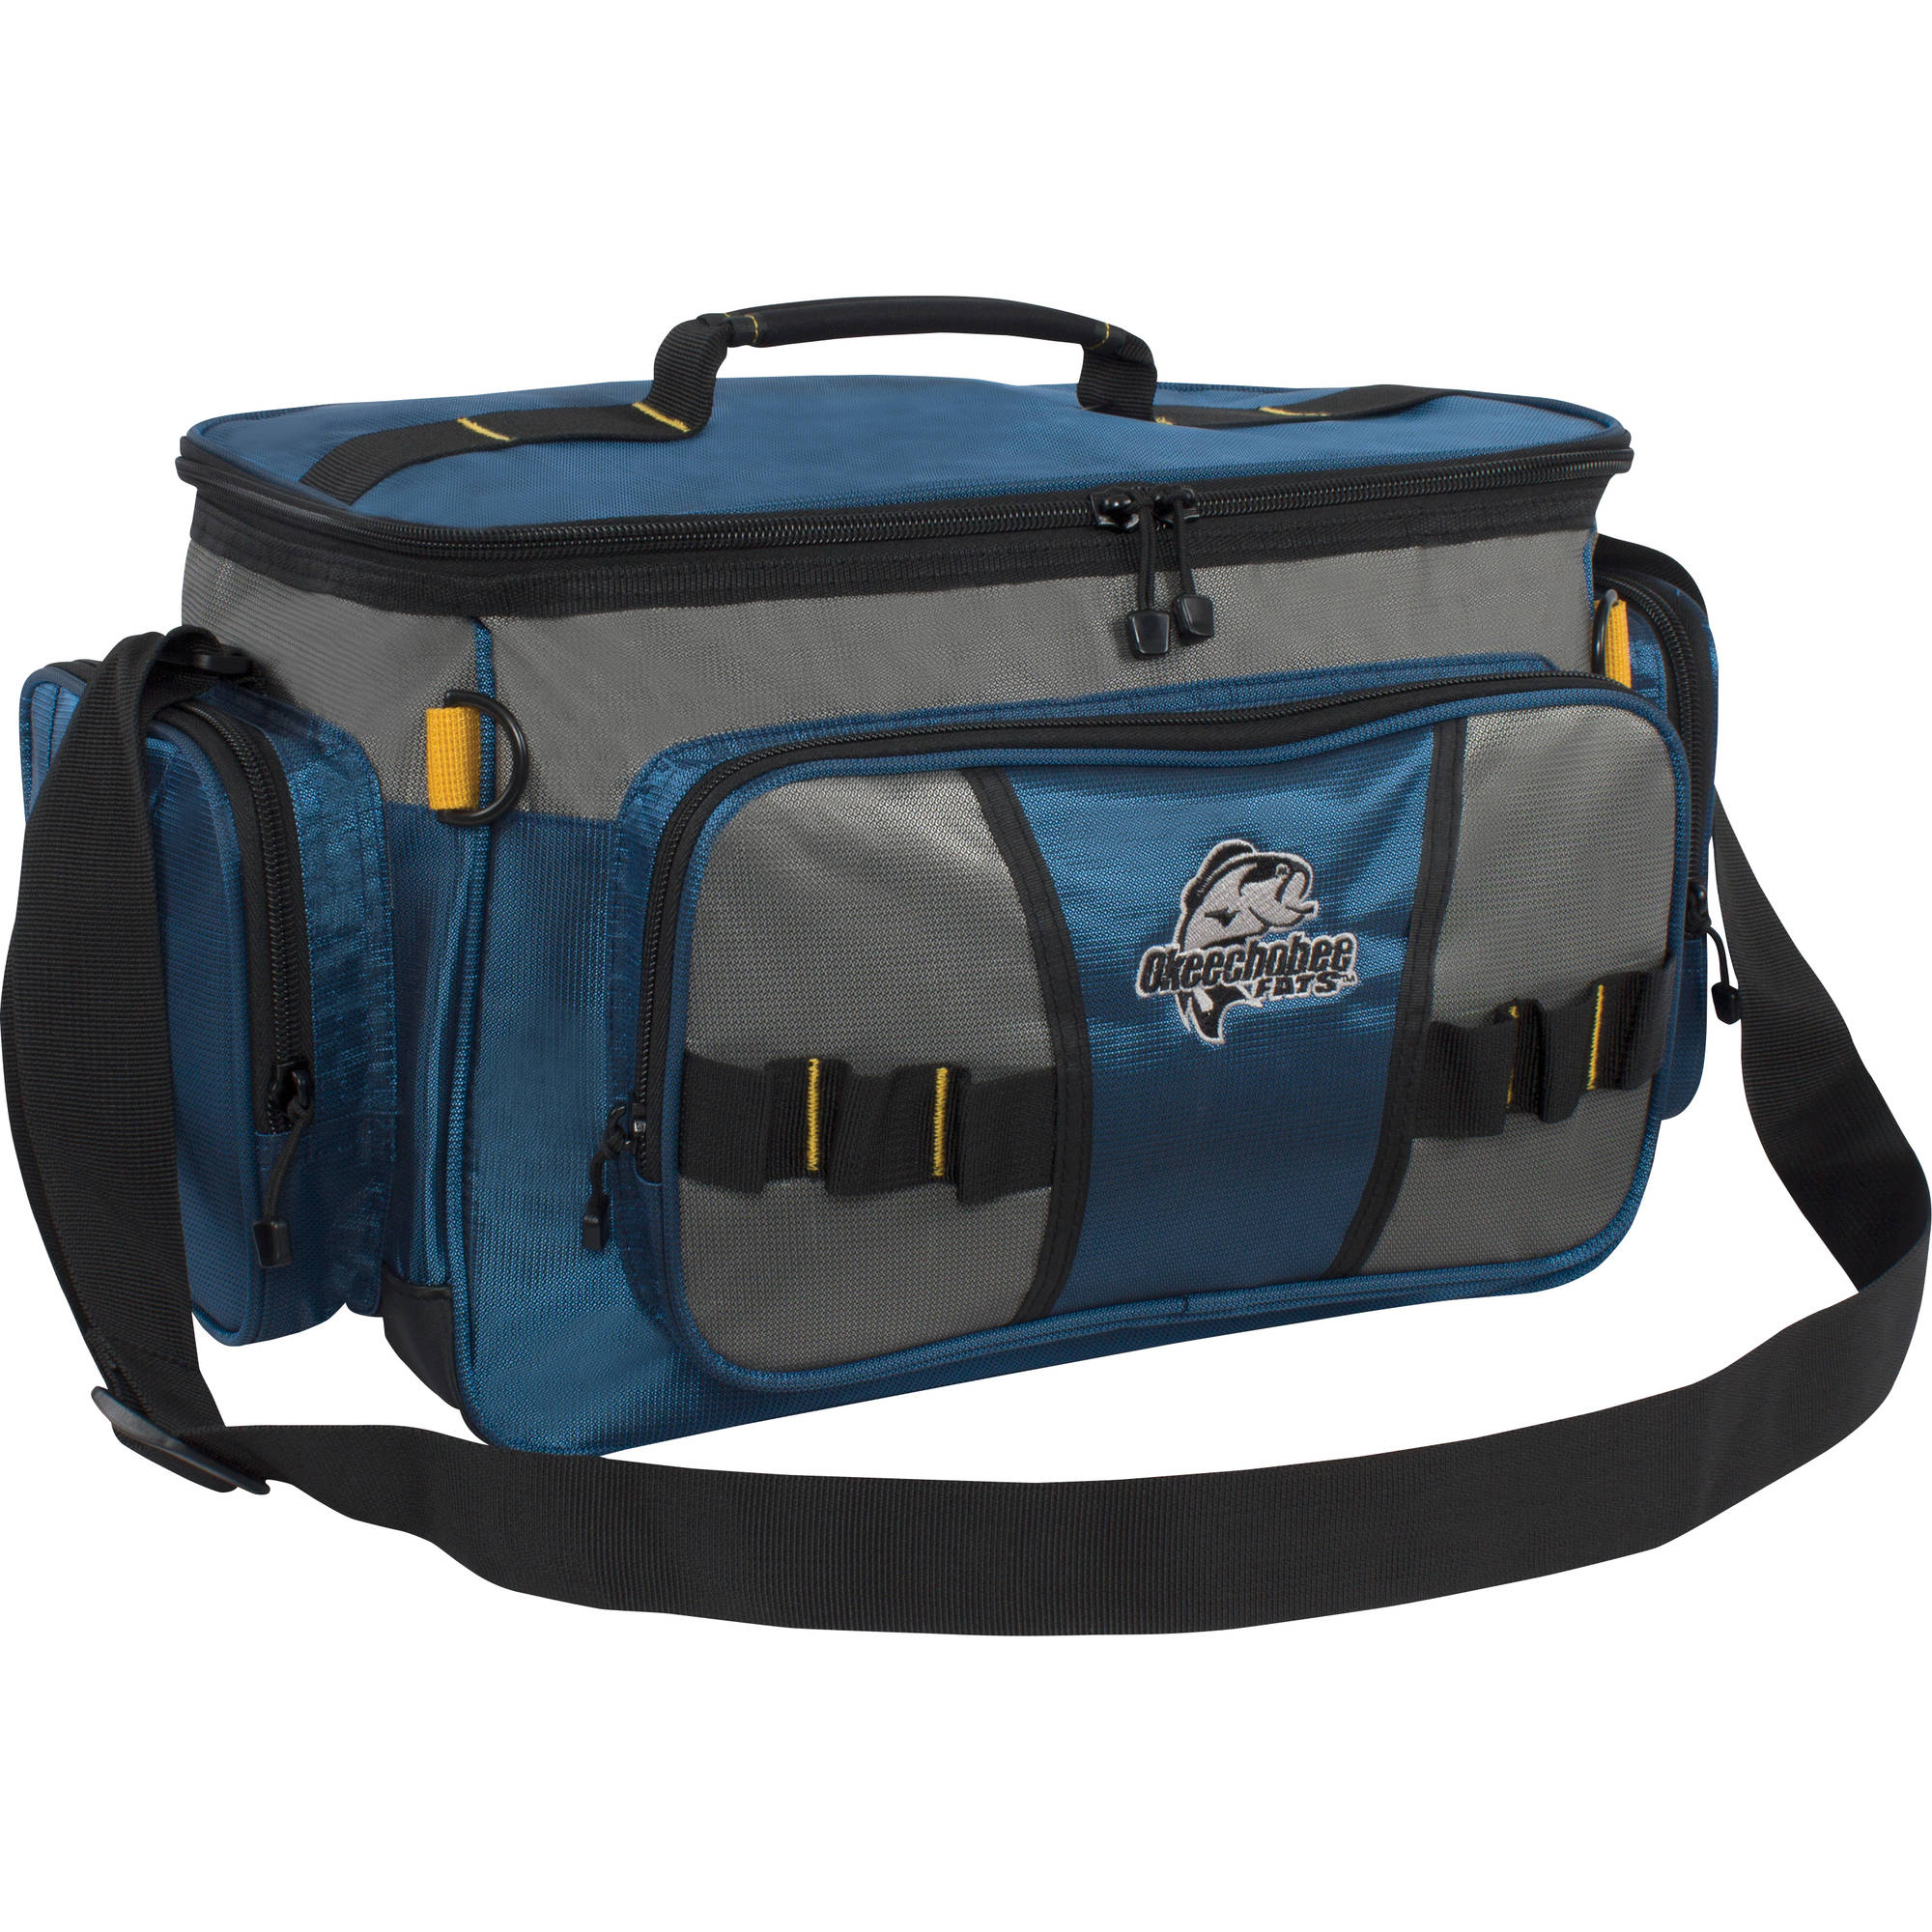 Okeechobee Fats Large Soft-Sided Tackle Bag with 2 Large Utility Lure Box Storage Containers, Blue